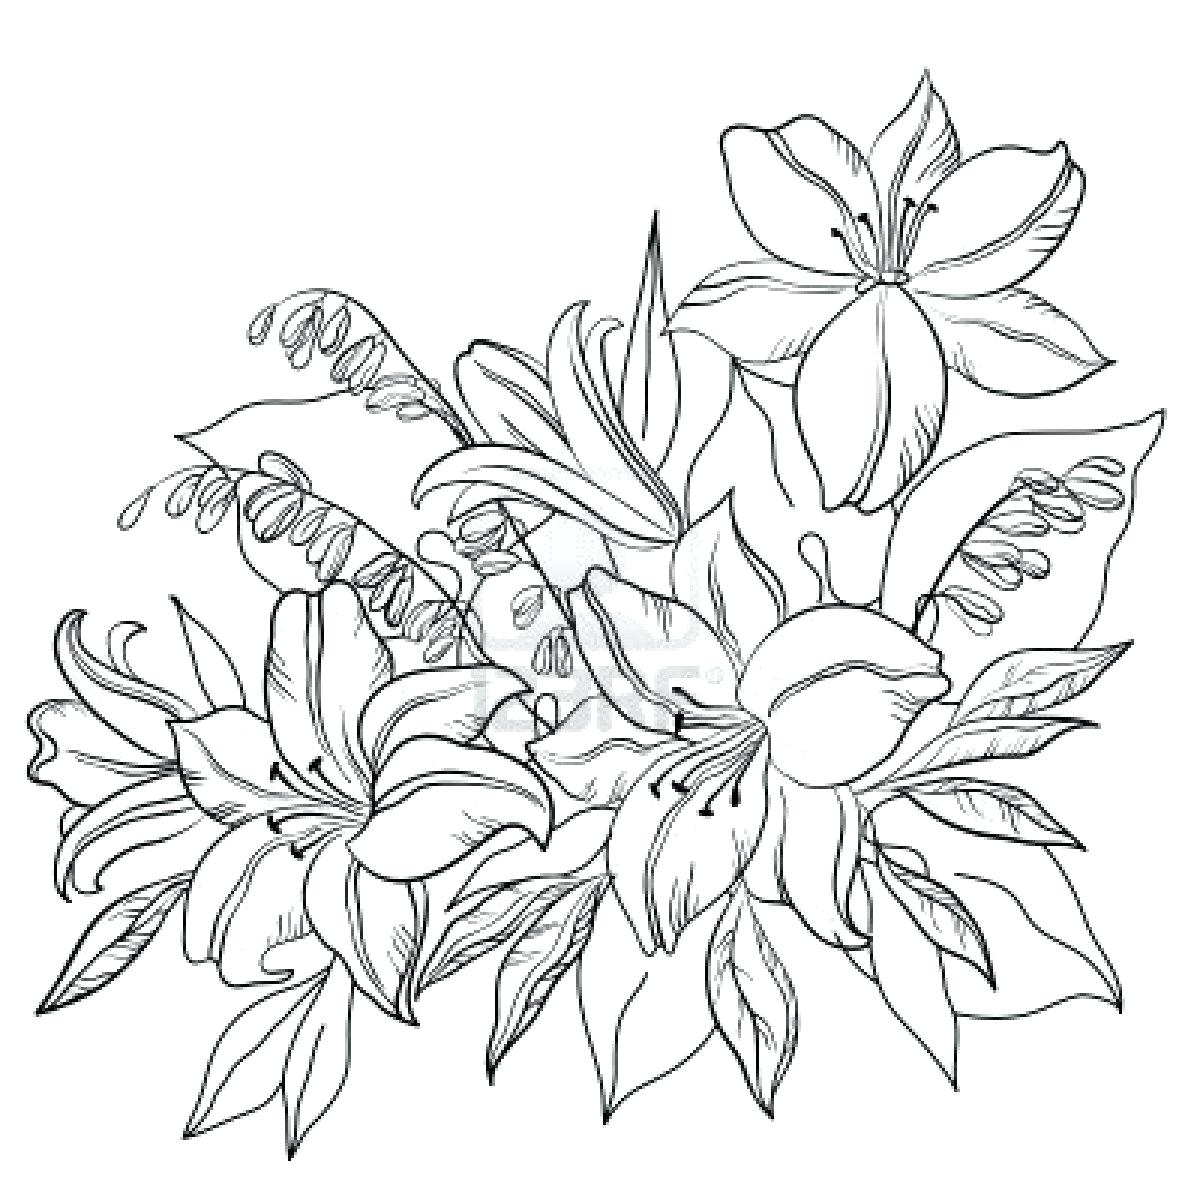 Lotus flower drawing sketch at getdrawings free for personal 1200x1200 rose tattoo outline sketch small lotus flower designs sleeve izmirmasajfo